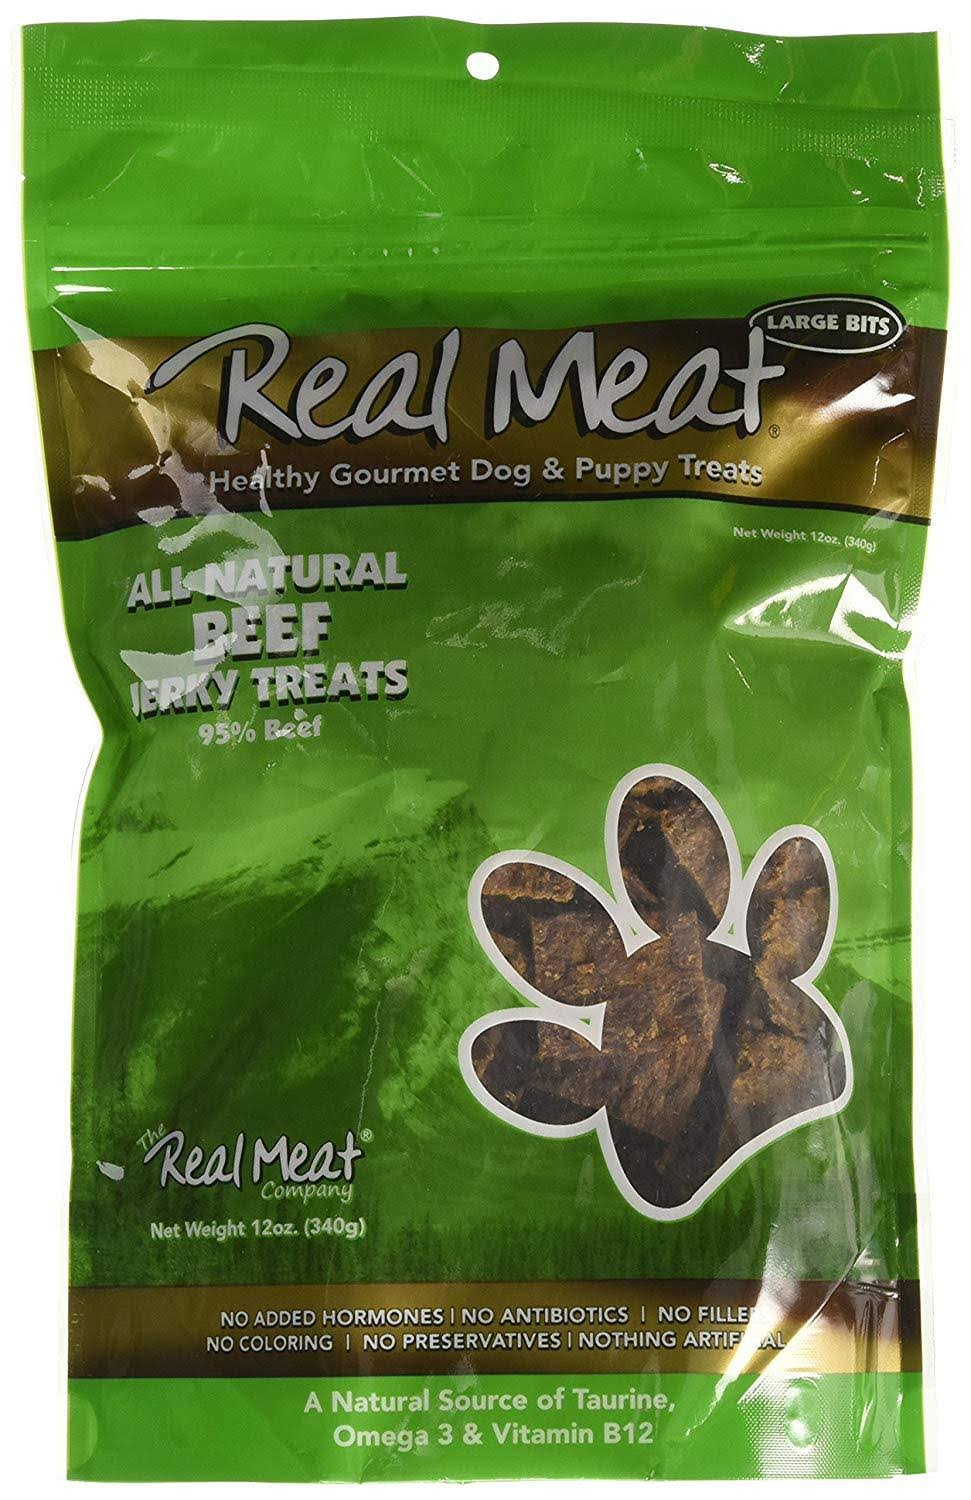 Real Meat Dog Treats - Beef Jerky, 12oz